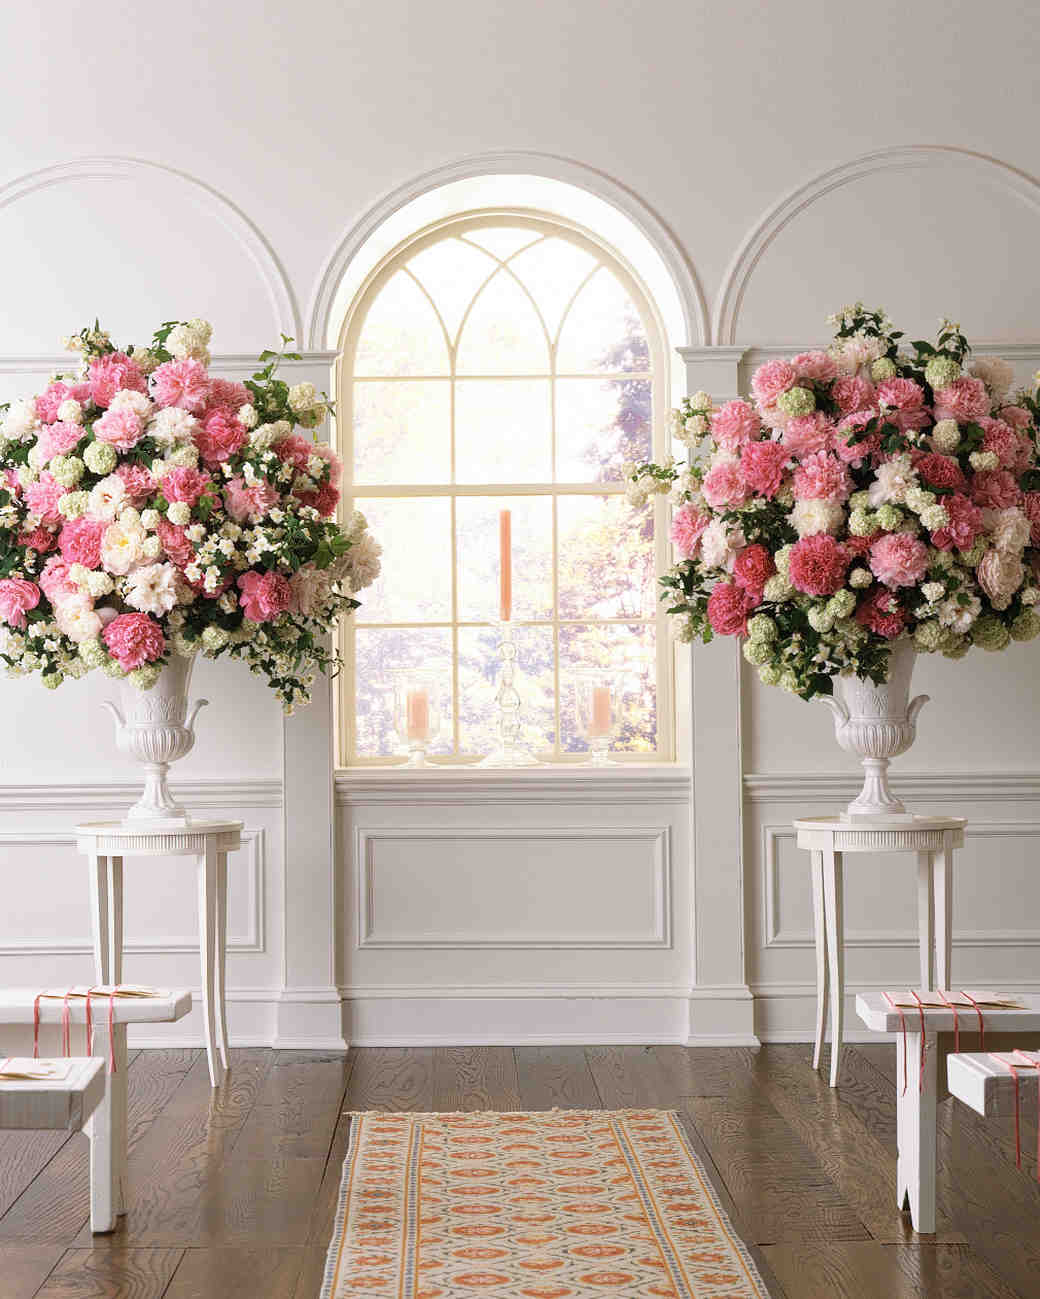 Wedding Altar Sims 2: Peony-Inspired Wedding Ideas